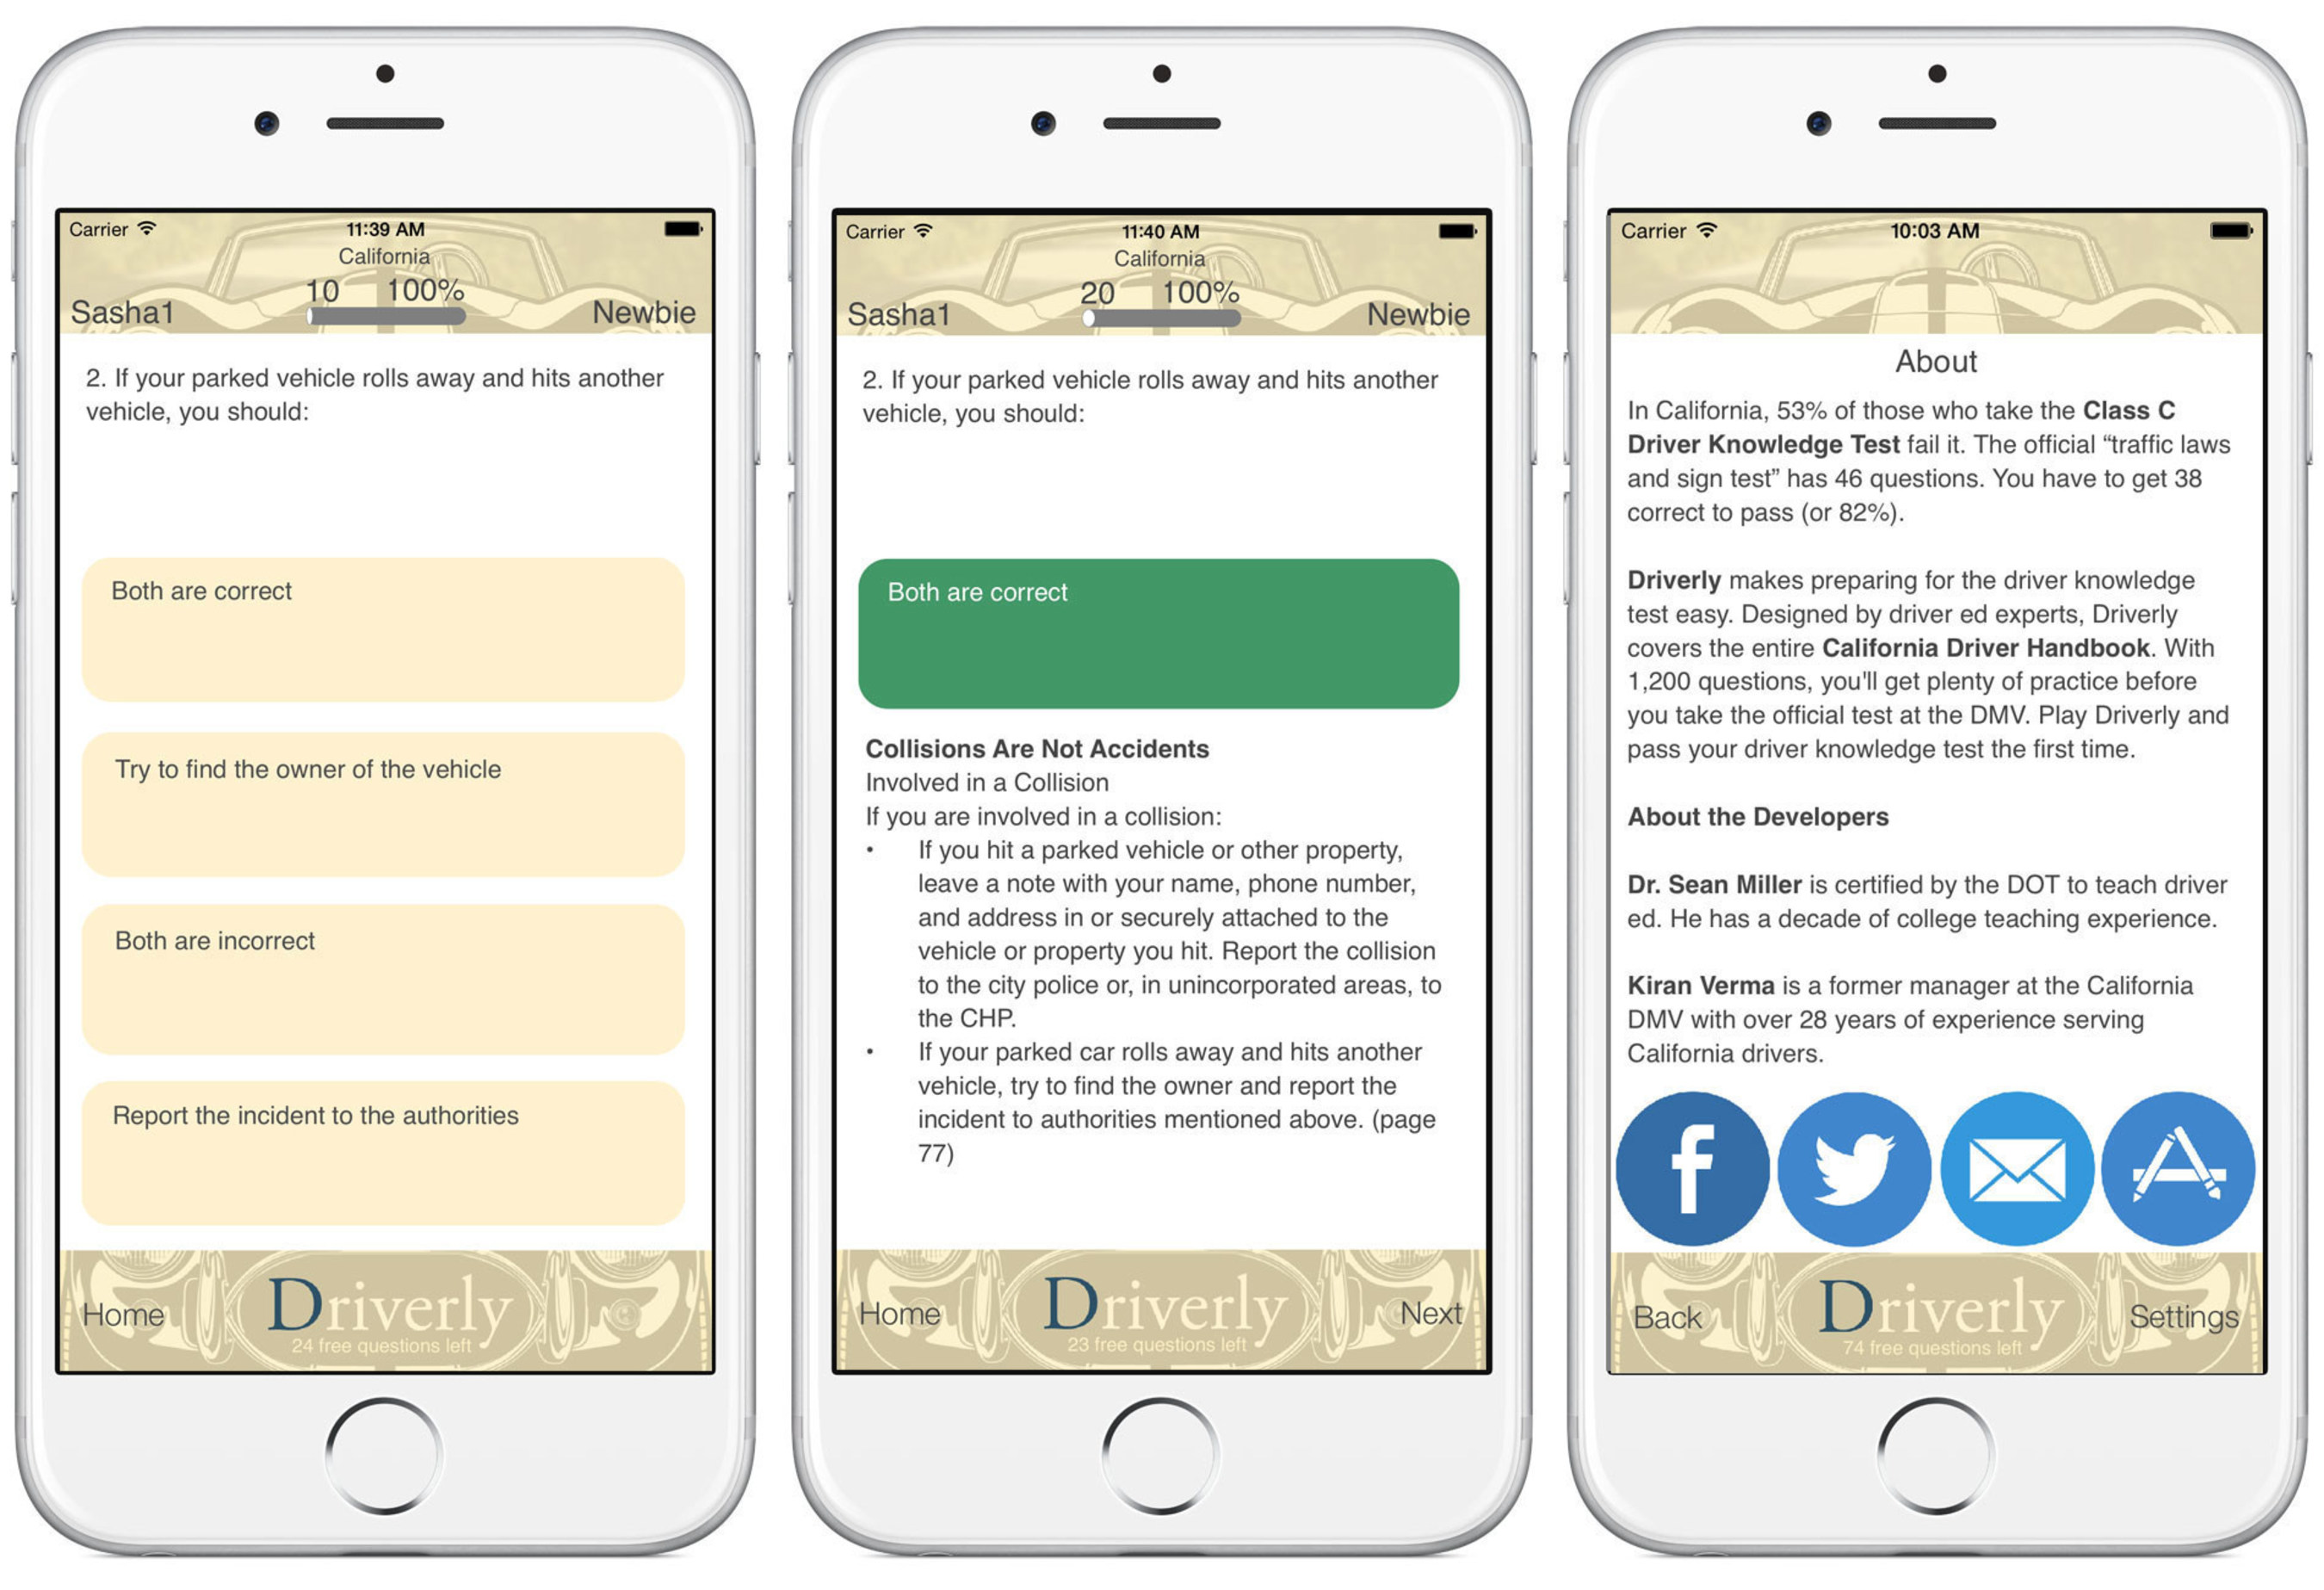 New Mobile App, Driverly, Helps California Residents Ace the DMV Driver Knowledge Test